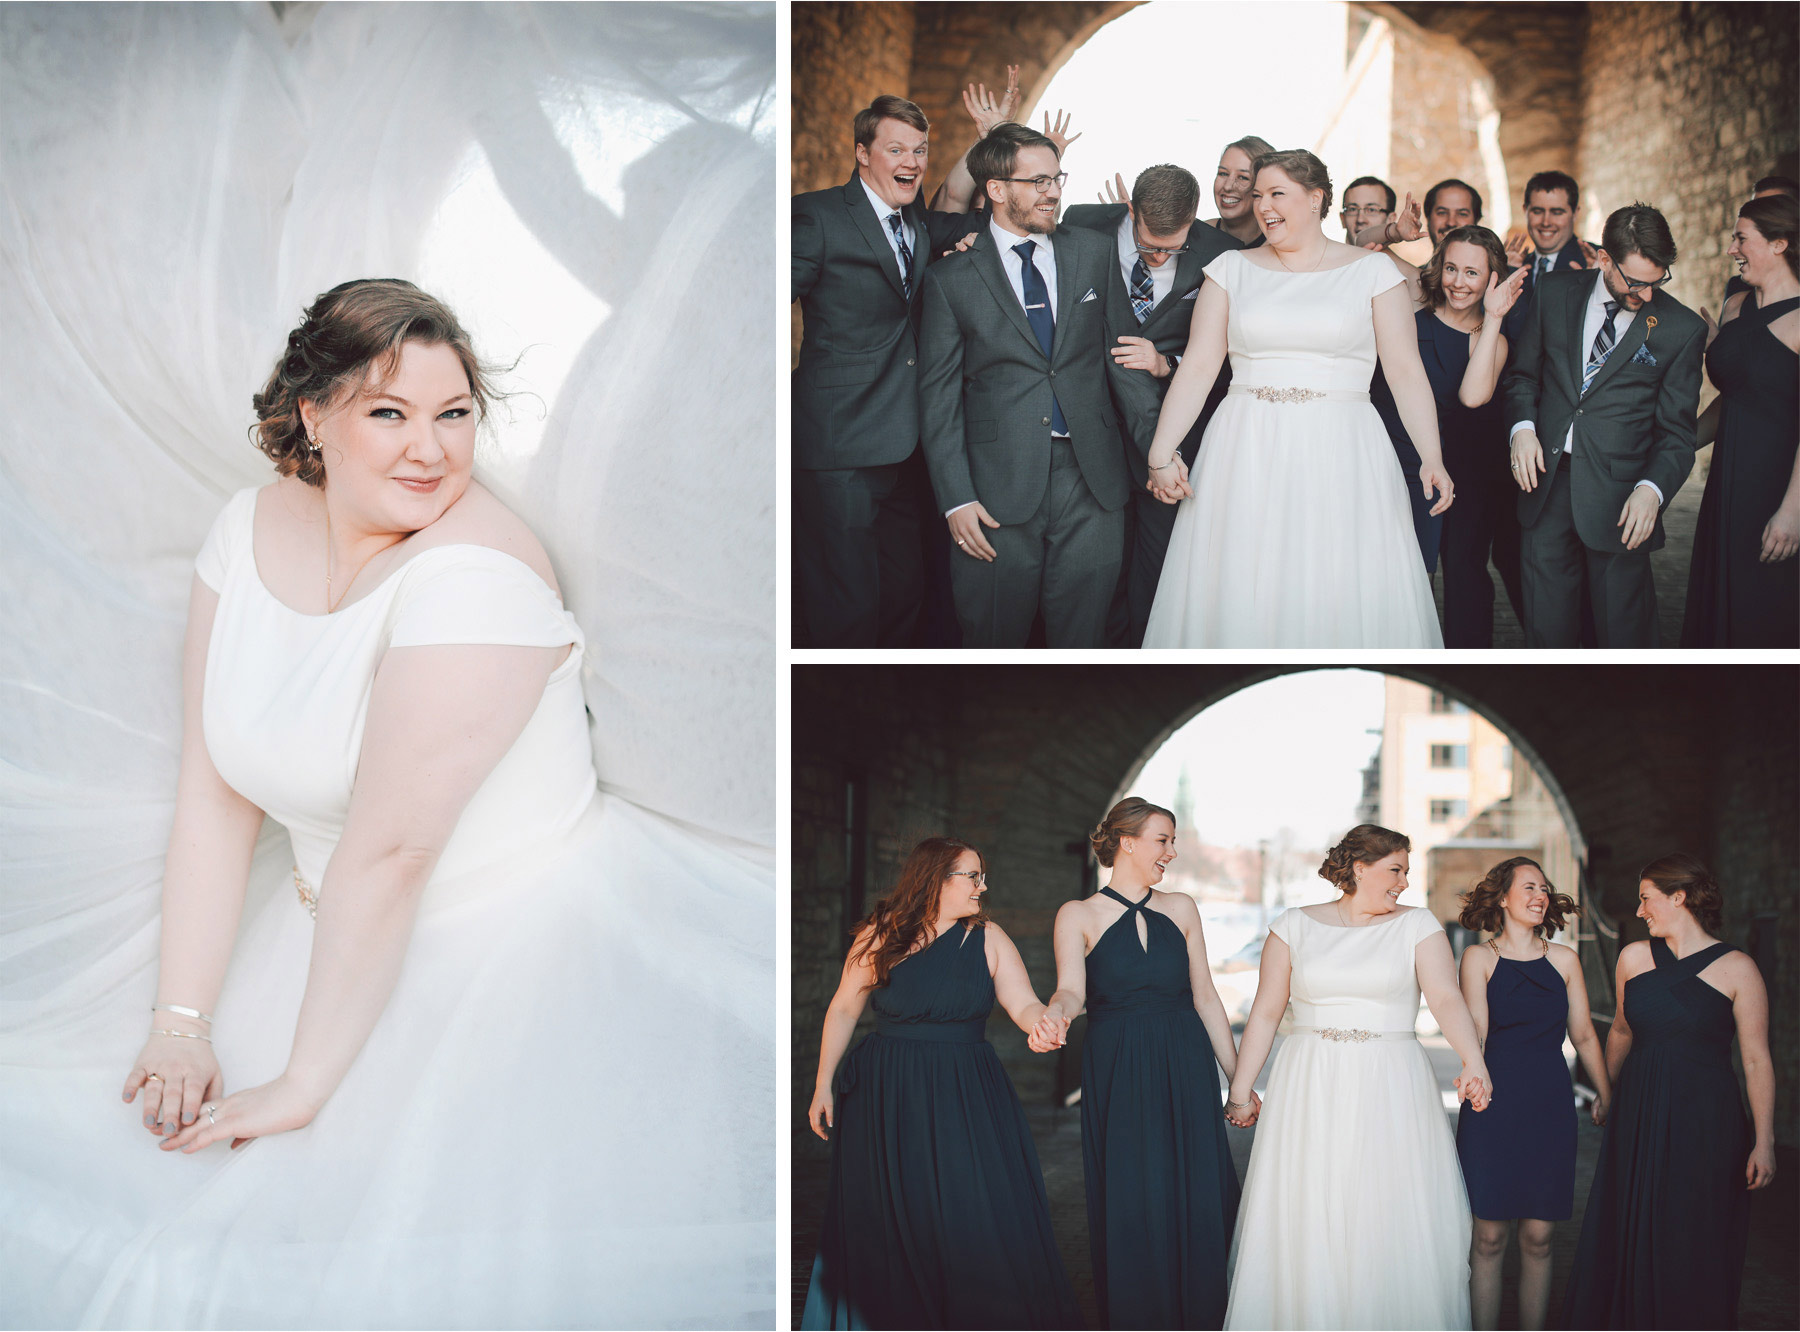 09-Minneapolis-Wedding-Photography-by-Vick-Groomsmen-Dress-Group-Libby-and-Nathan.jpg